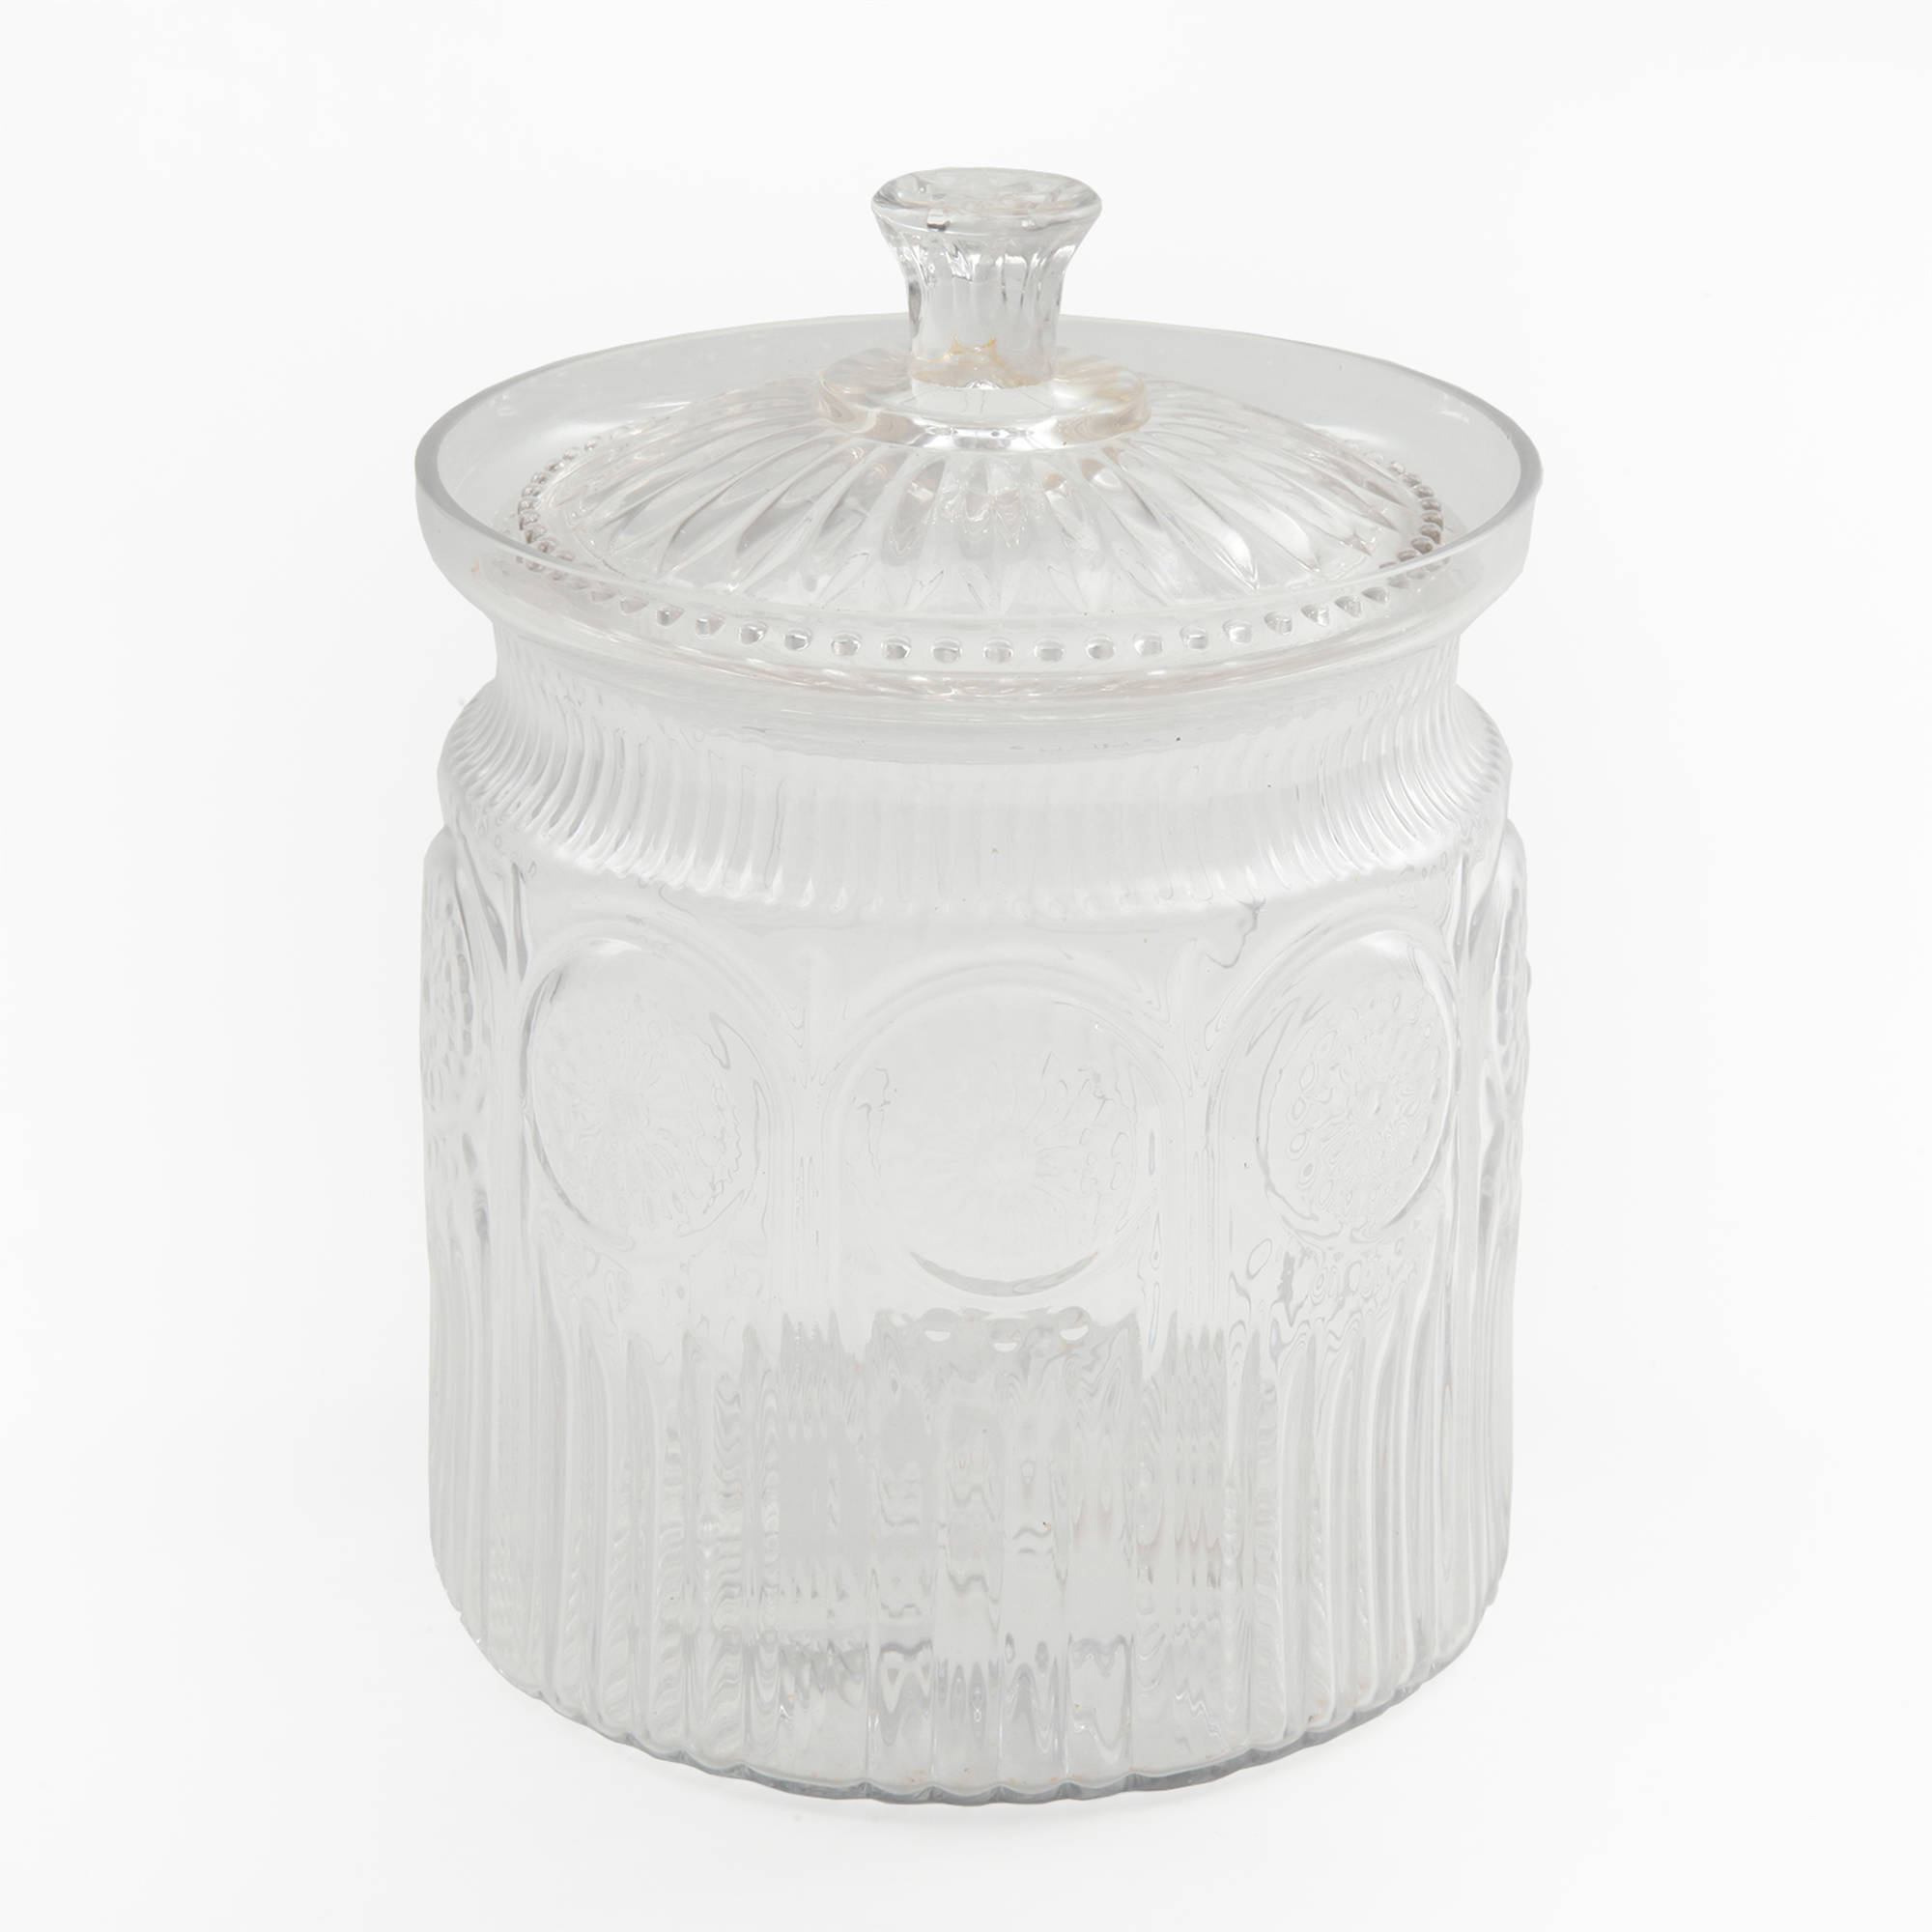 The Pioneer Woman Adeline Glass Cookie Jar Walmartcom